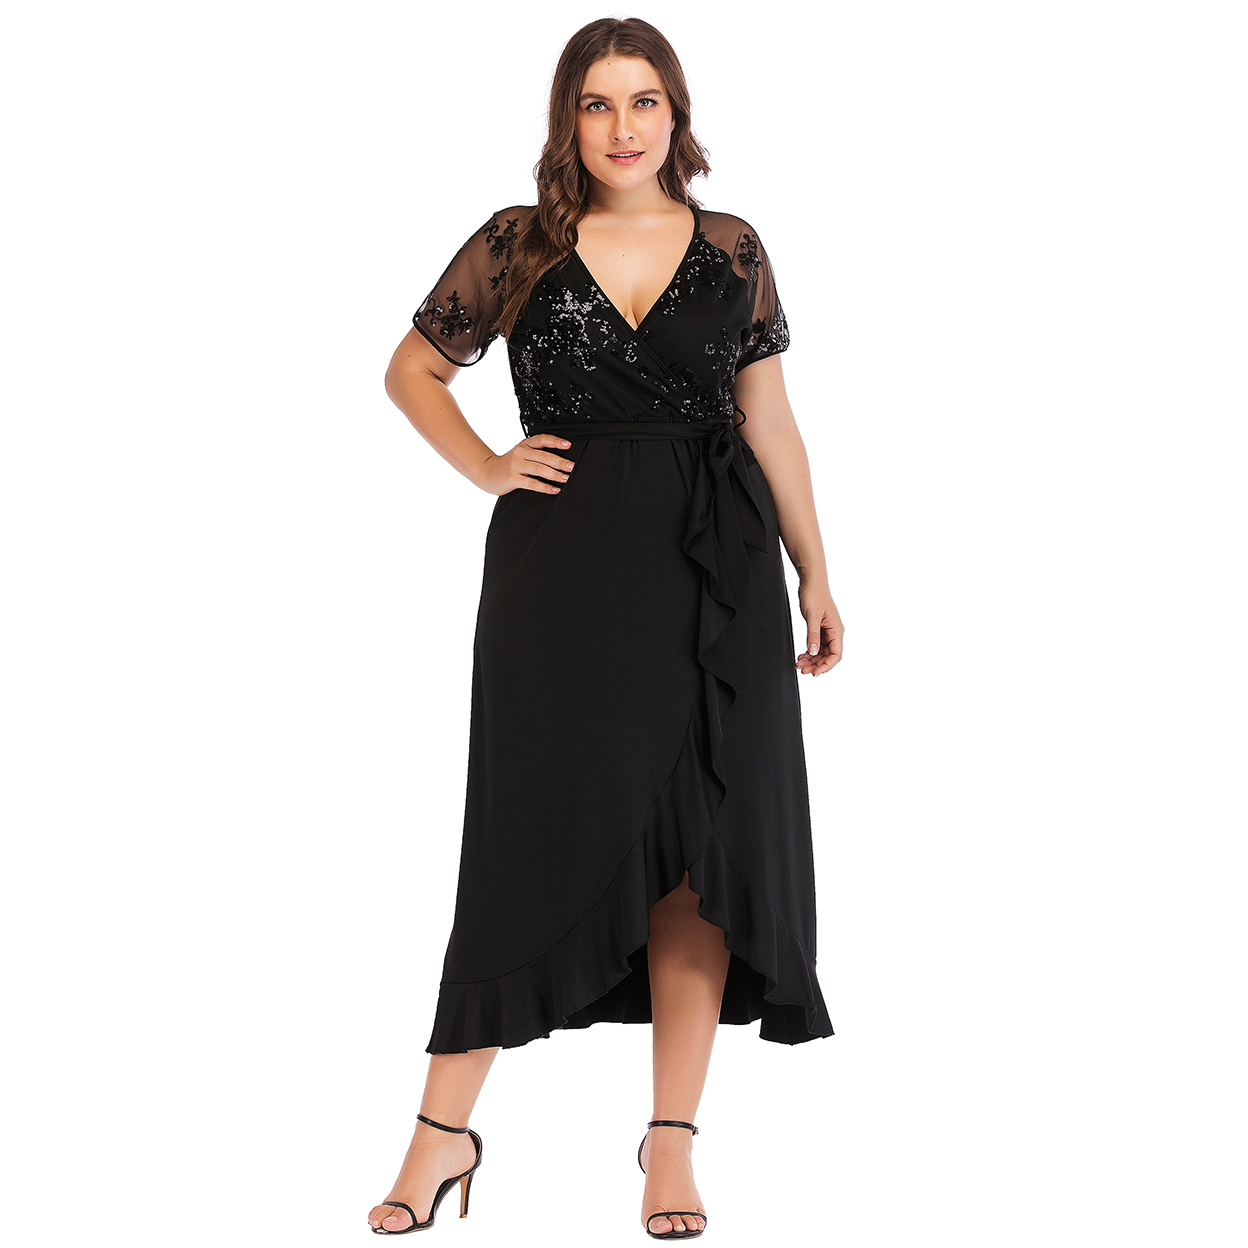 Esprlia Plus Semi Sheer Bodice Tie Waist Dress